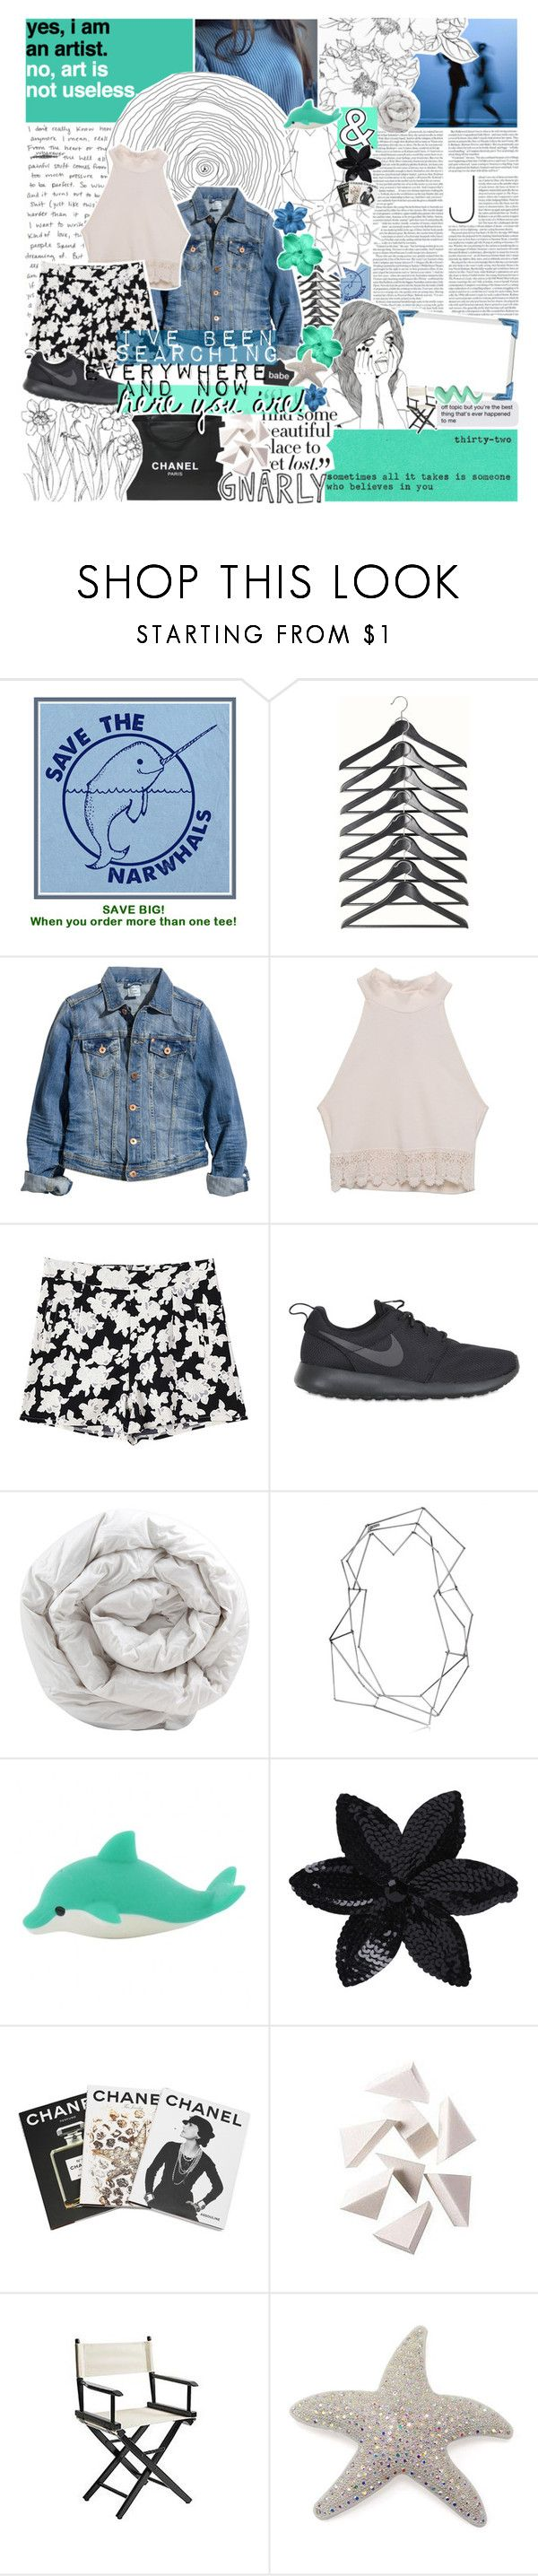 """""""730;; if you ain't here to party, take your a** back home"""" by lili-is-a-koala ❤ liked on Polyvore featuring H&M, LA: Hearts, Retrò, Chanel, NIKE, Brinkhaus, BANCI GIOIELLI, ASOS, Assouline Publishing and Bobbi Brown Cosmetics"""